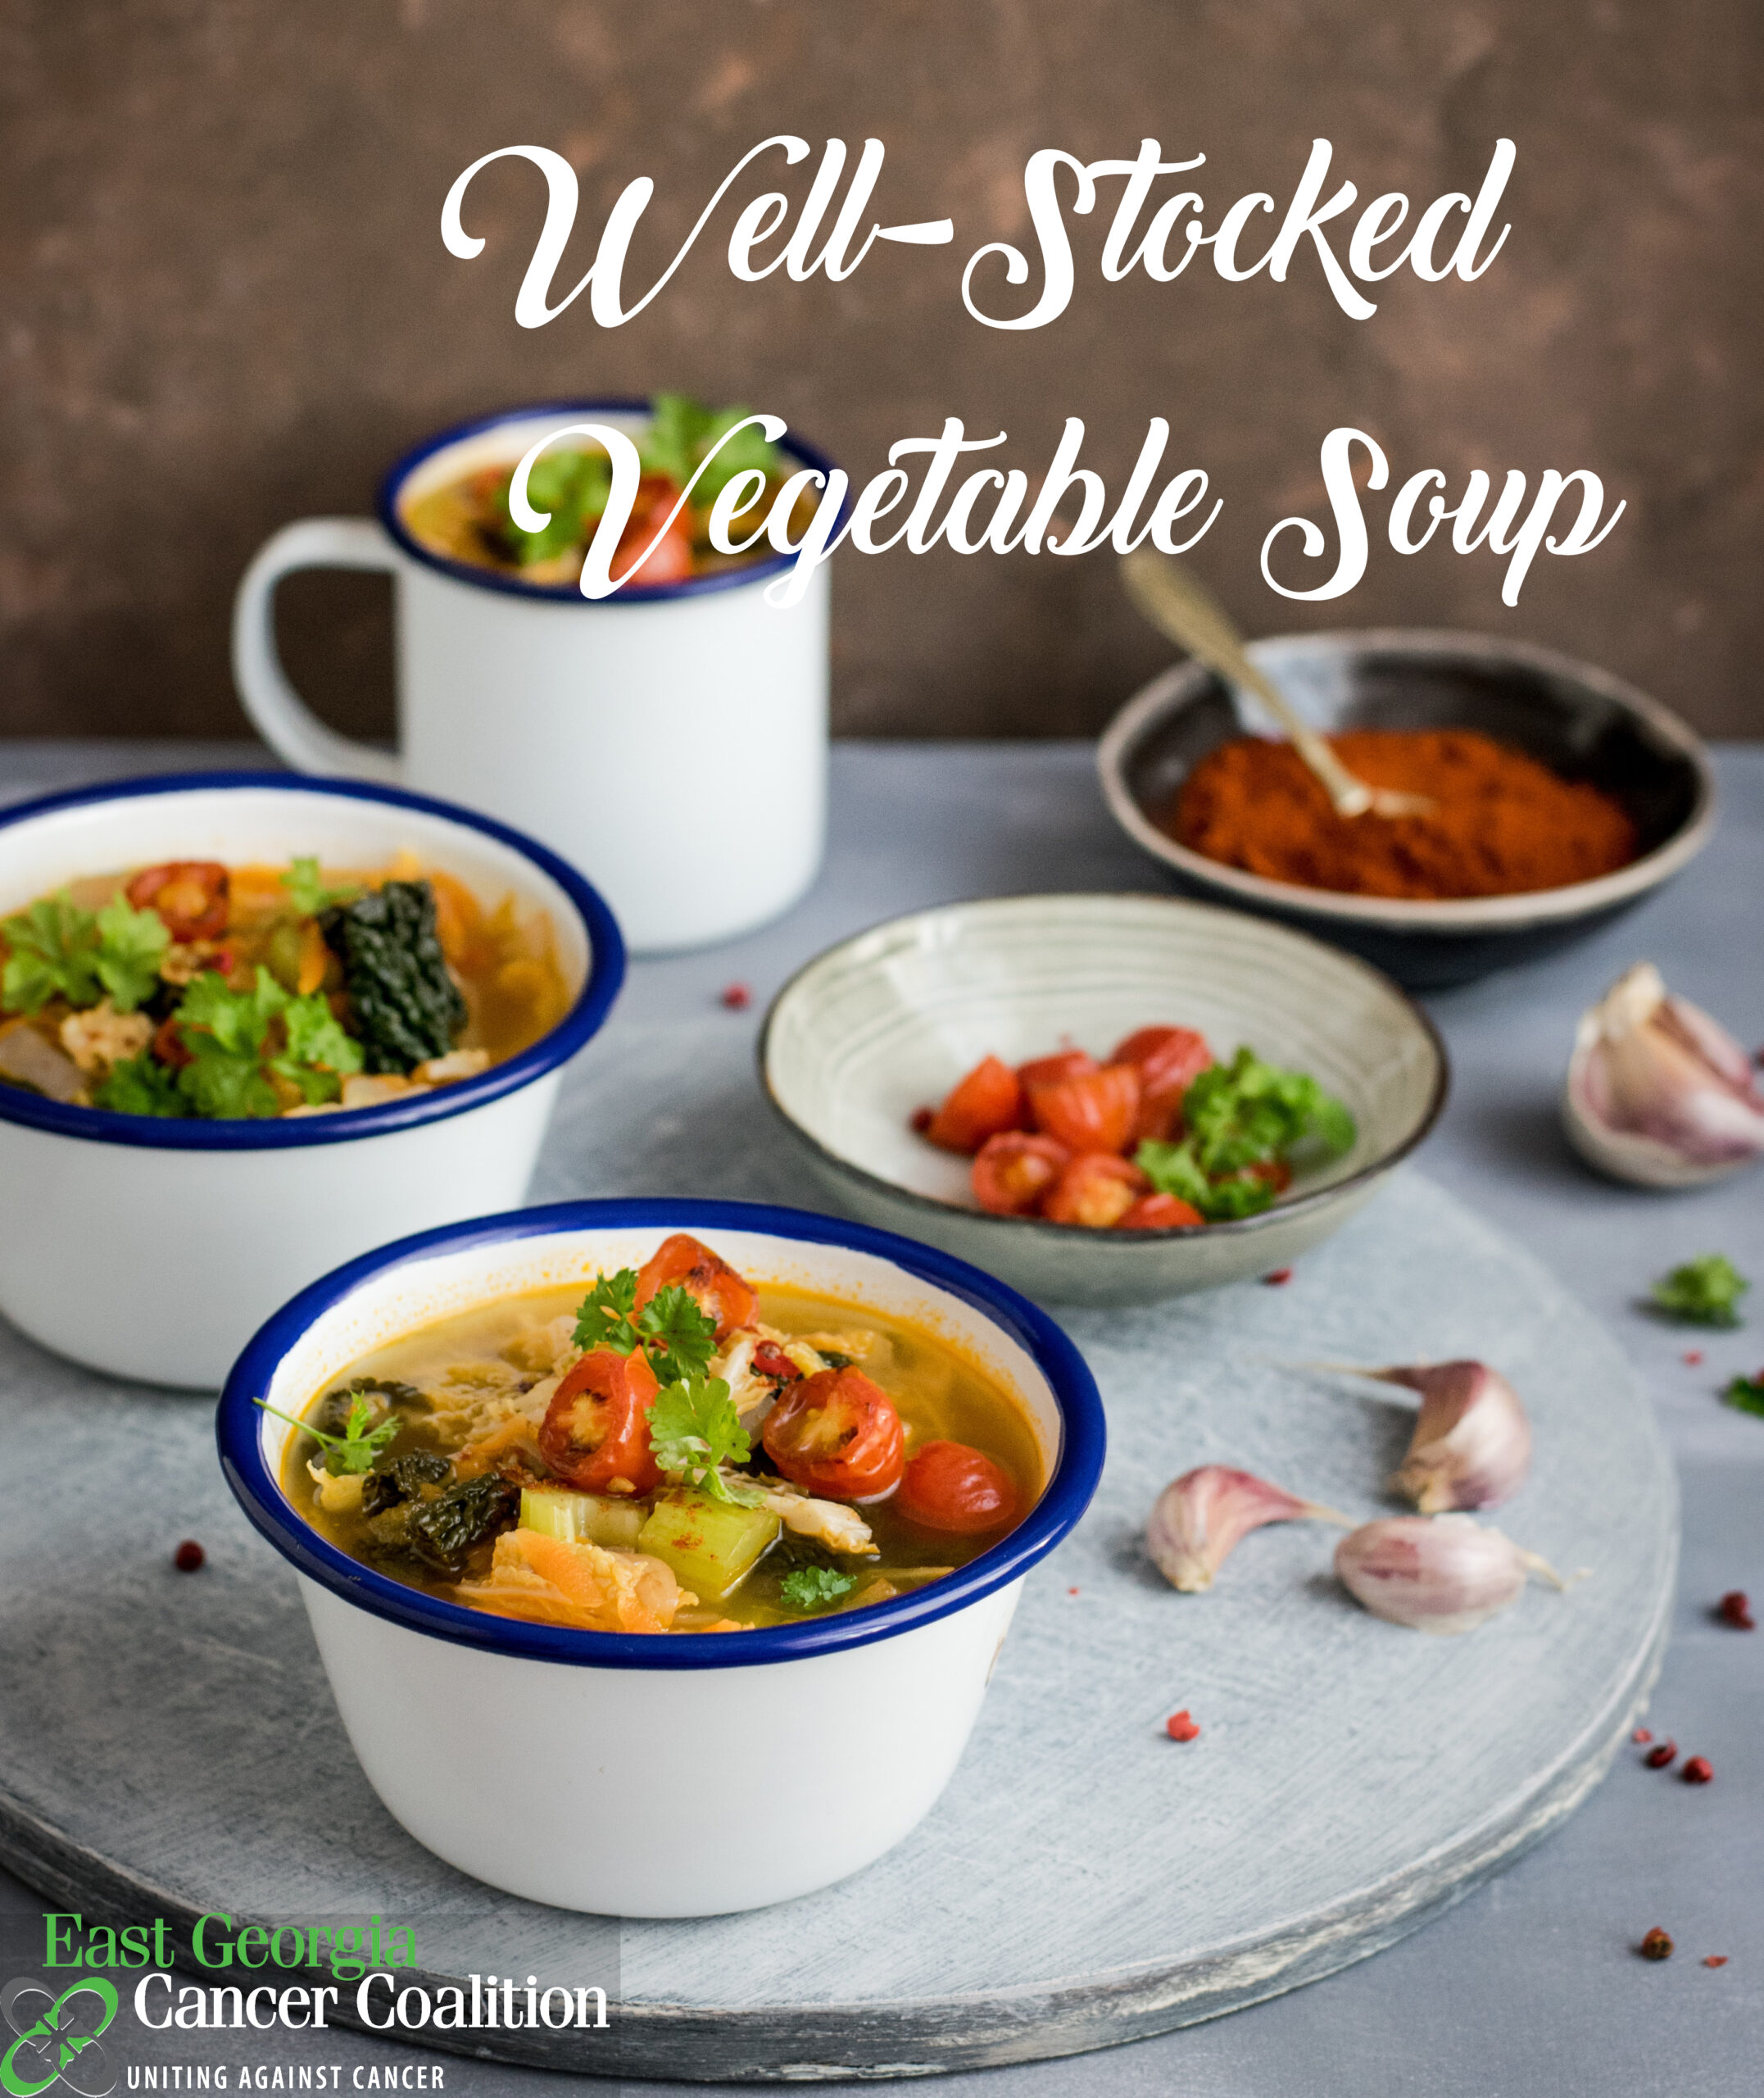 Well-stocked Soup